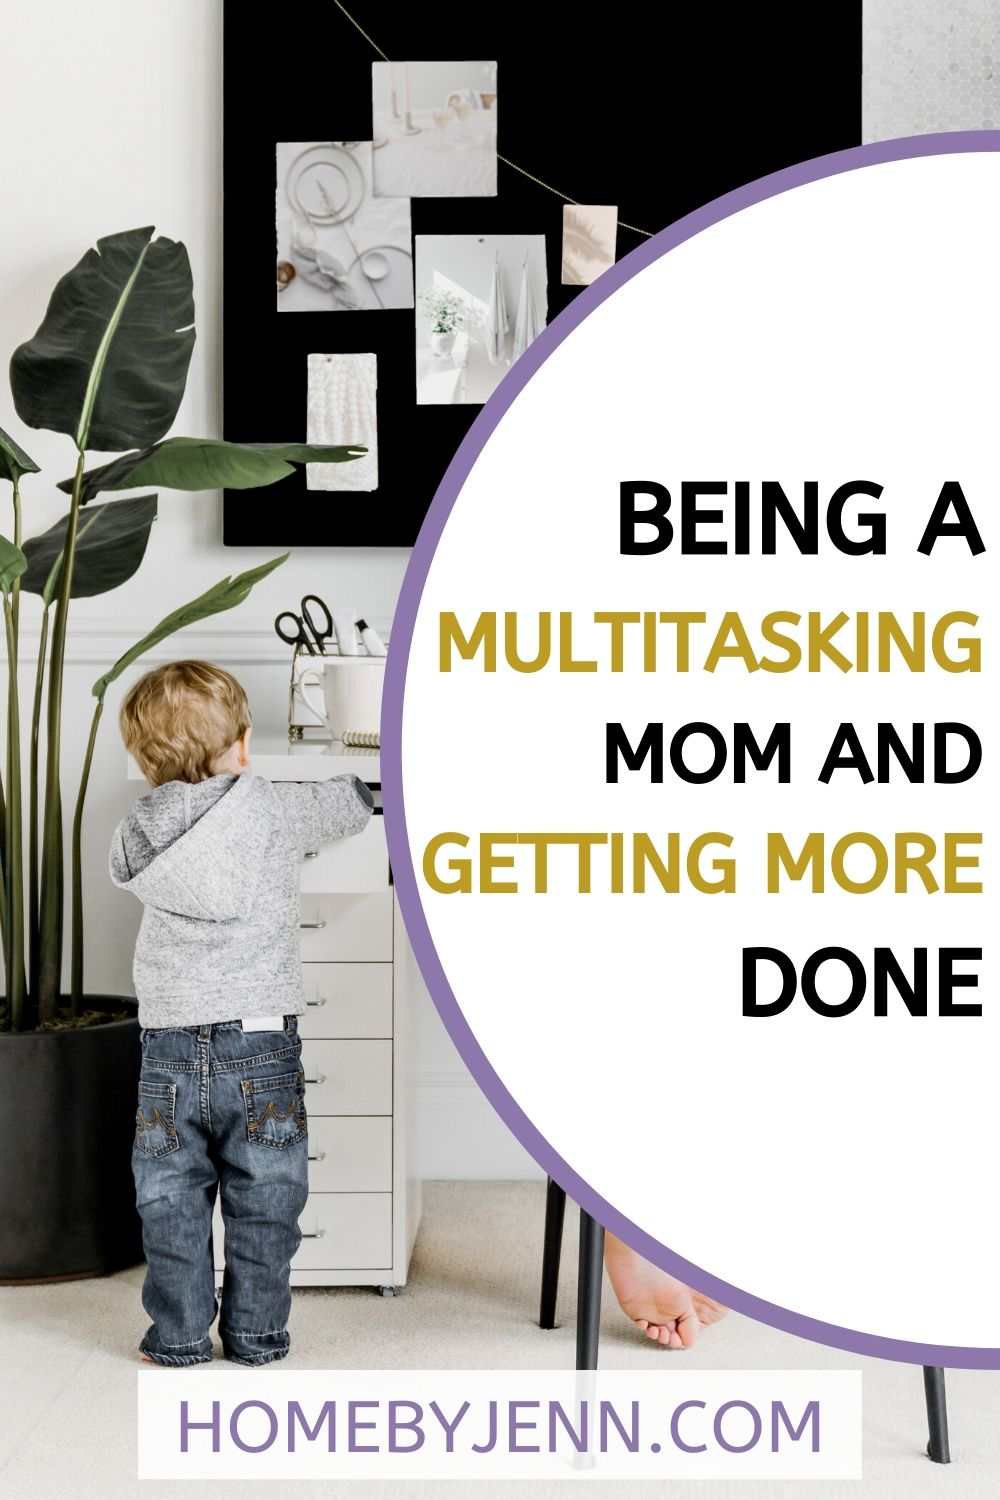 I'm going to share 5 ways you can be a multitasking mom without feeling like you are cutting corners.  You'll get more done and be happy that you did. #multitaskingmom #organized #stayathomemom via @homebyjenn